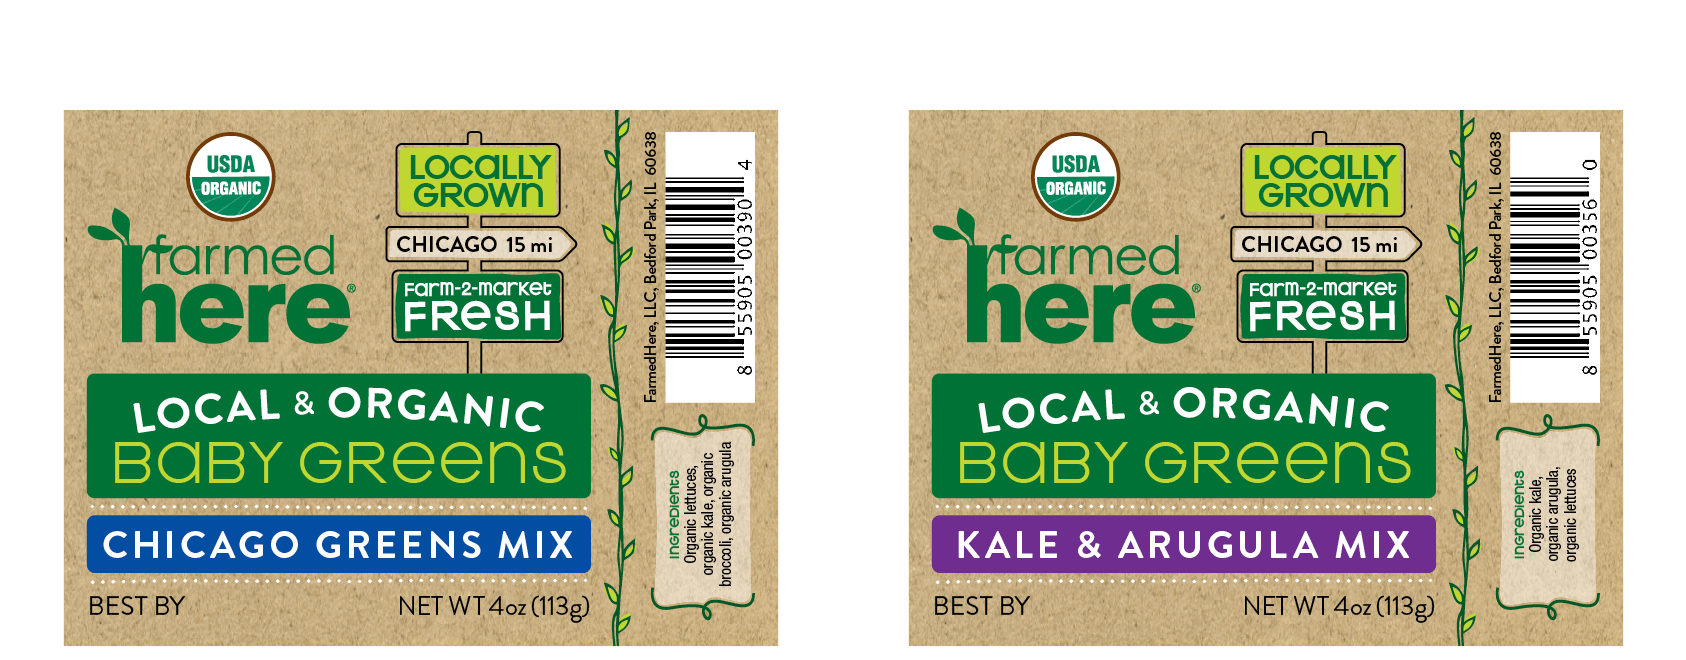 dtd farmedhere packaging baby greens 2up